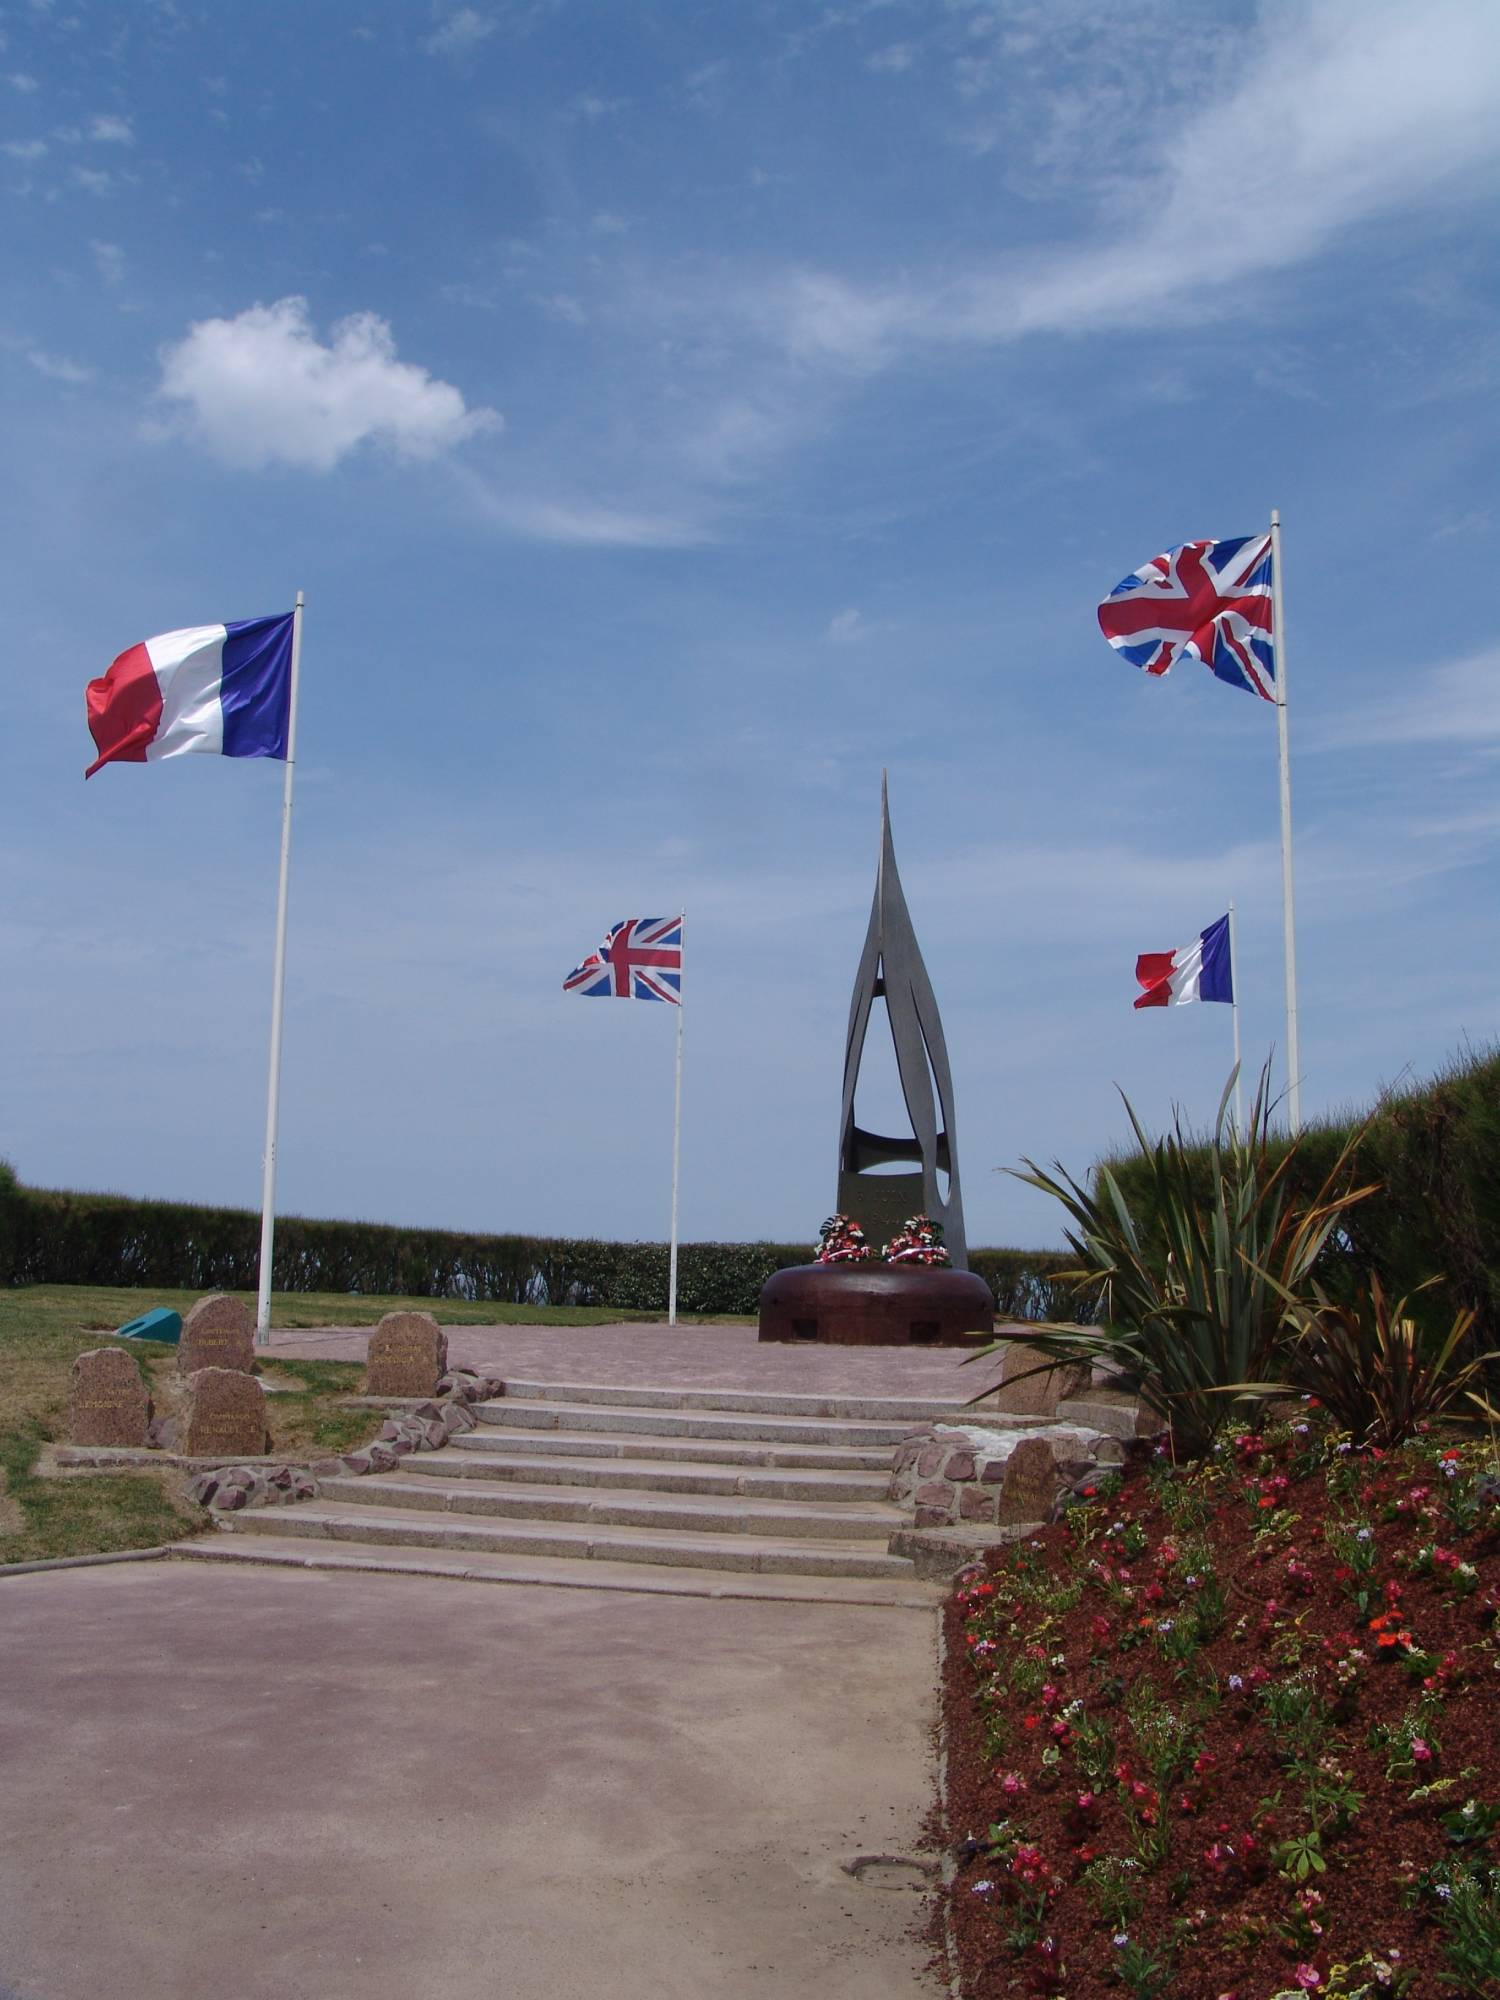 Explore the history of the beaches of Normandy |PassPorter.com